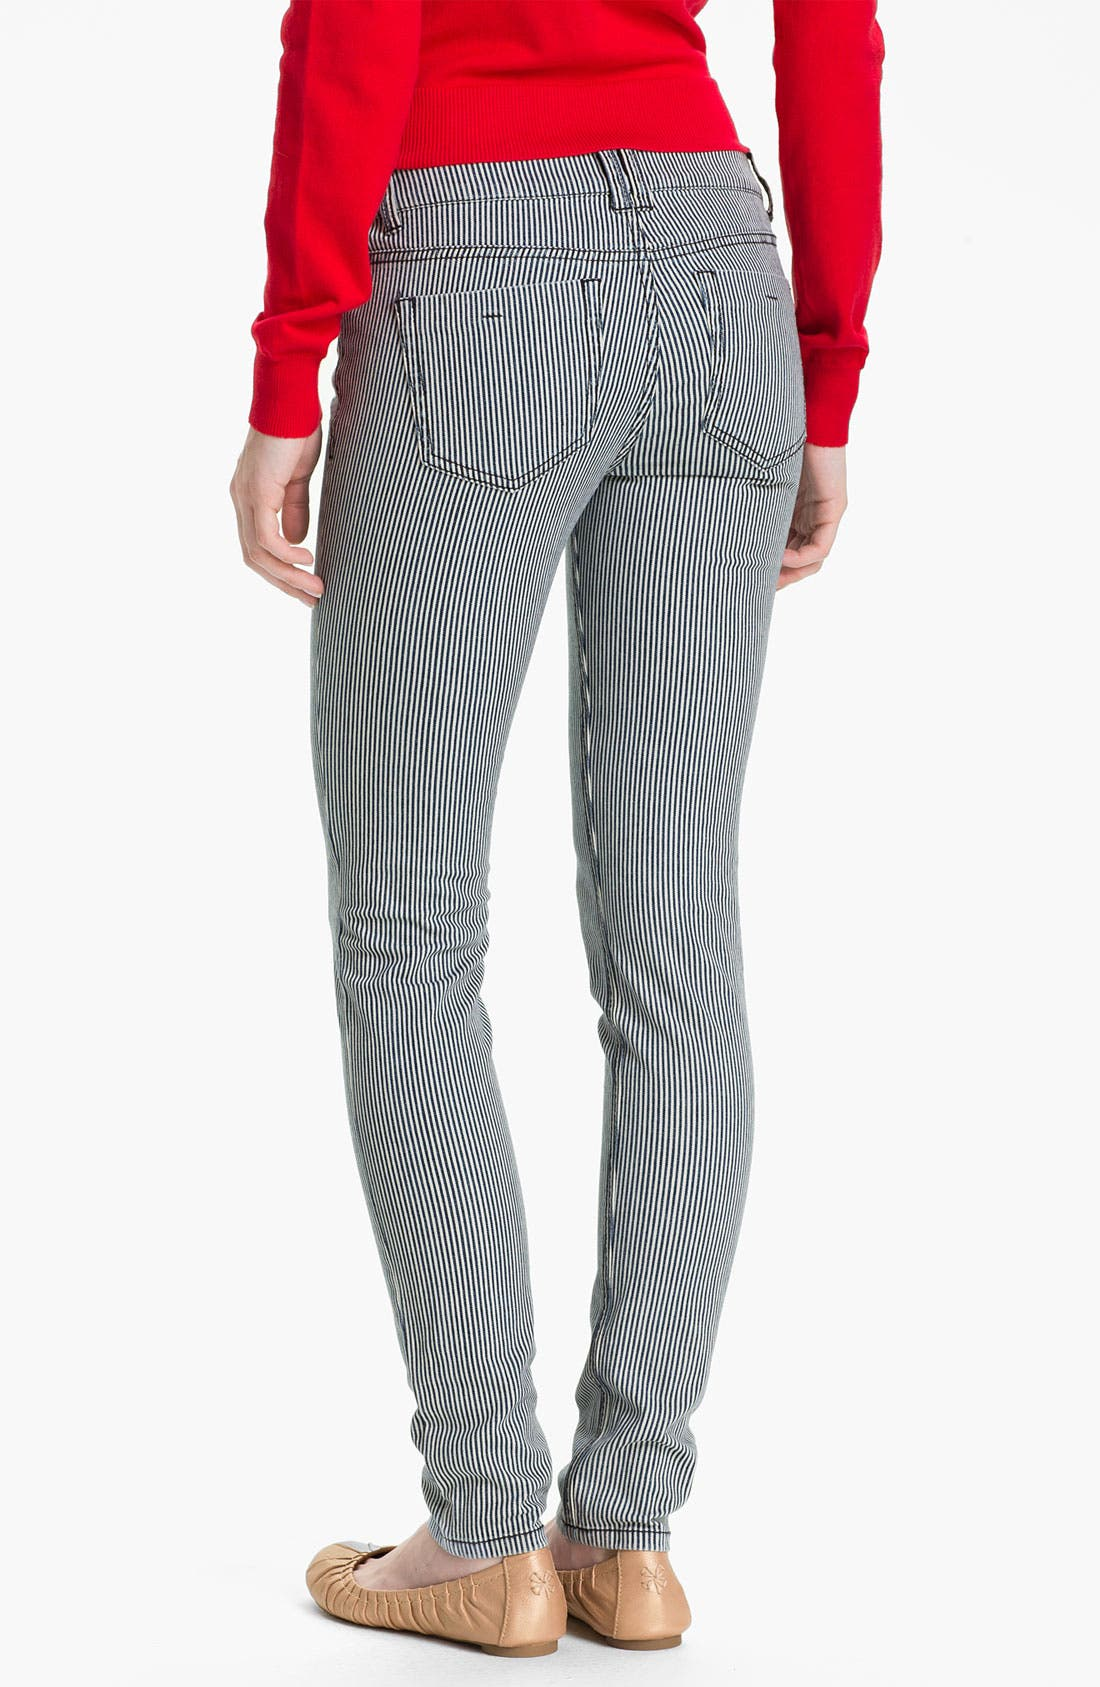 Alternate Image 1 Selected - Fire Stripe Skinny Jeans (Juniors)